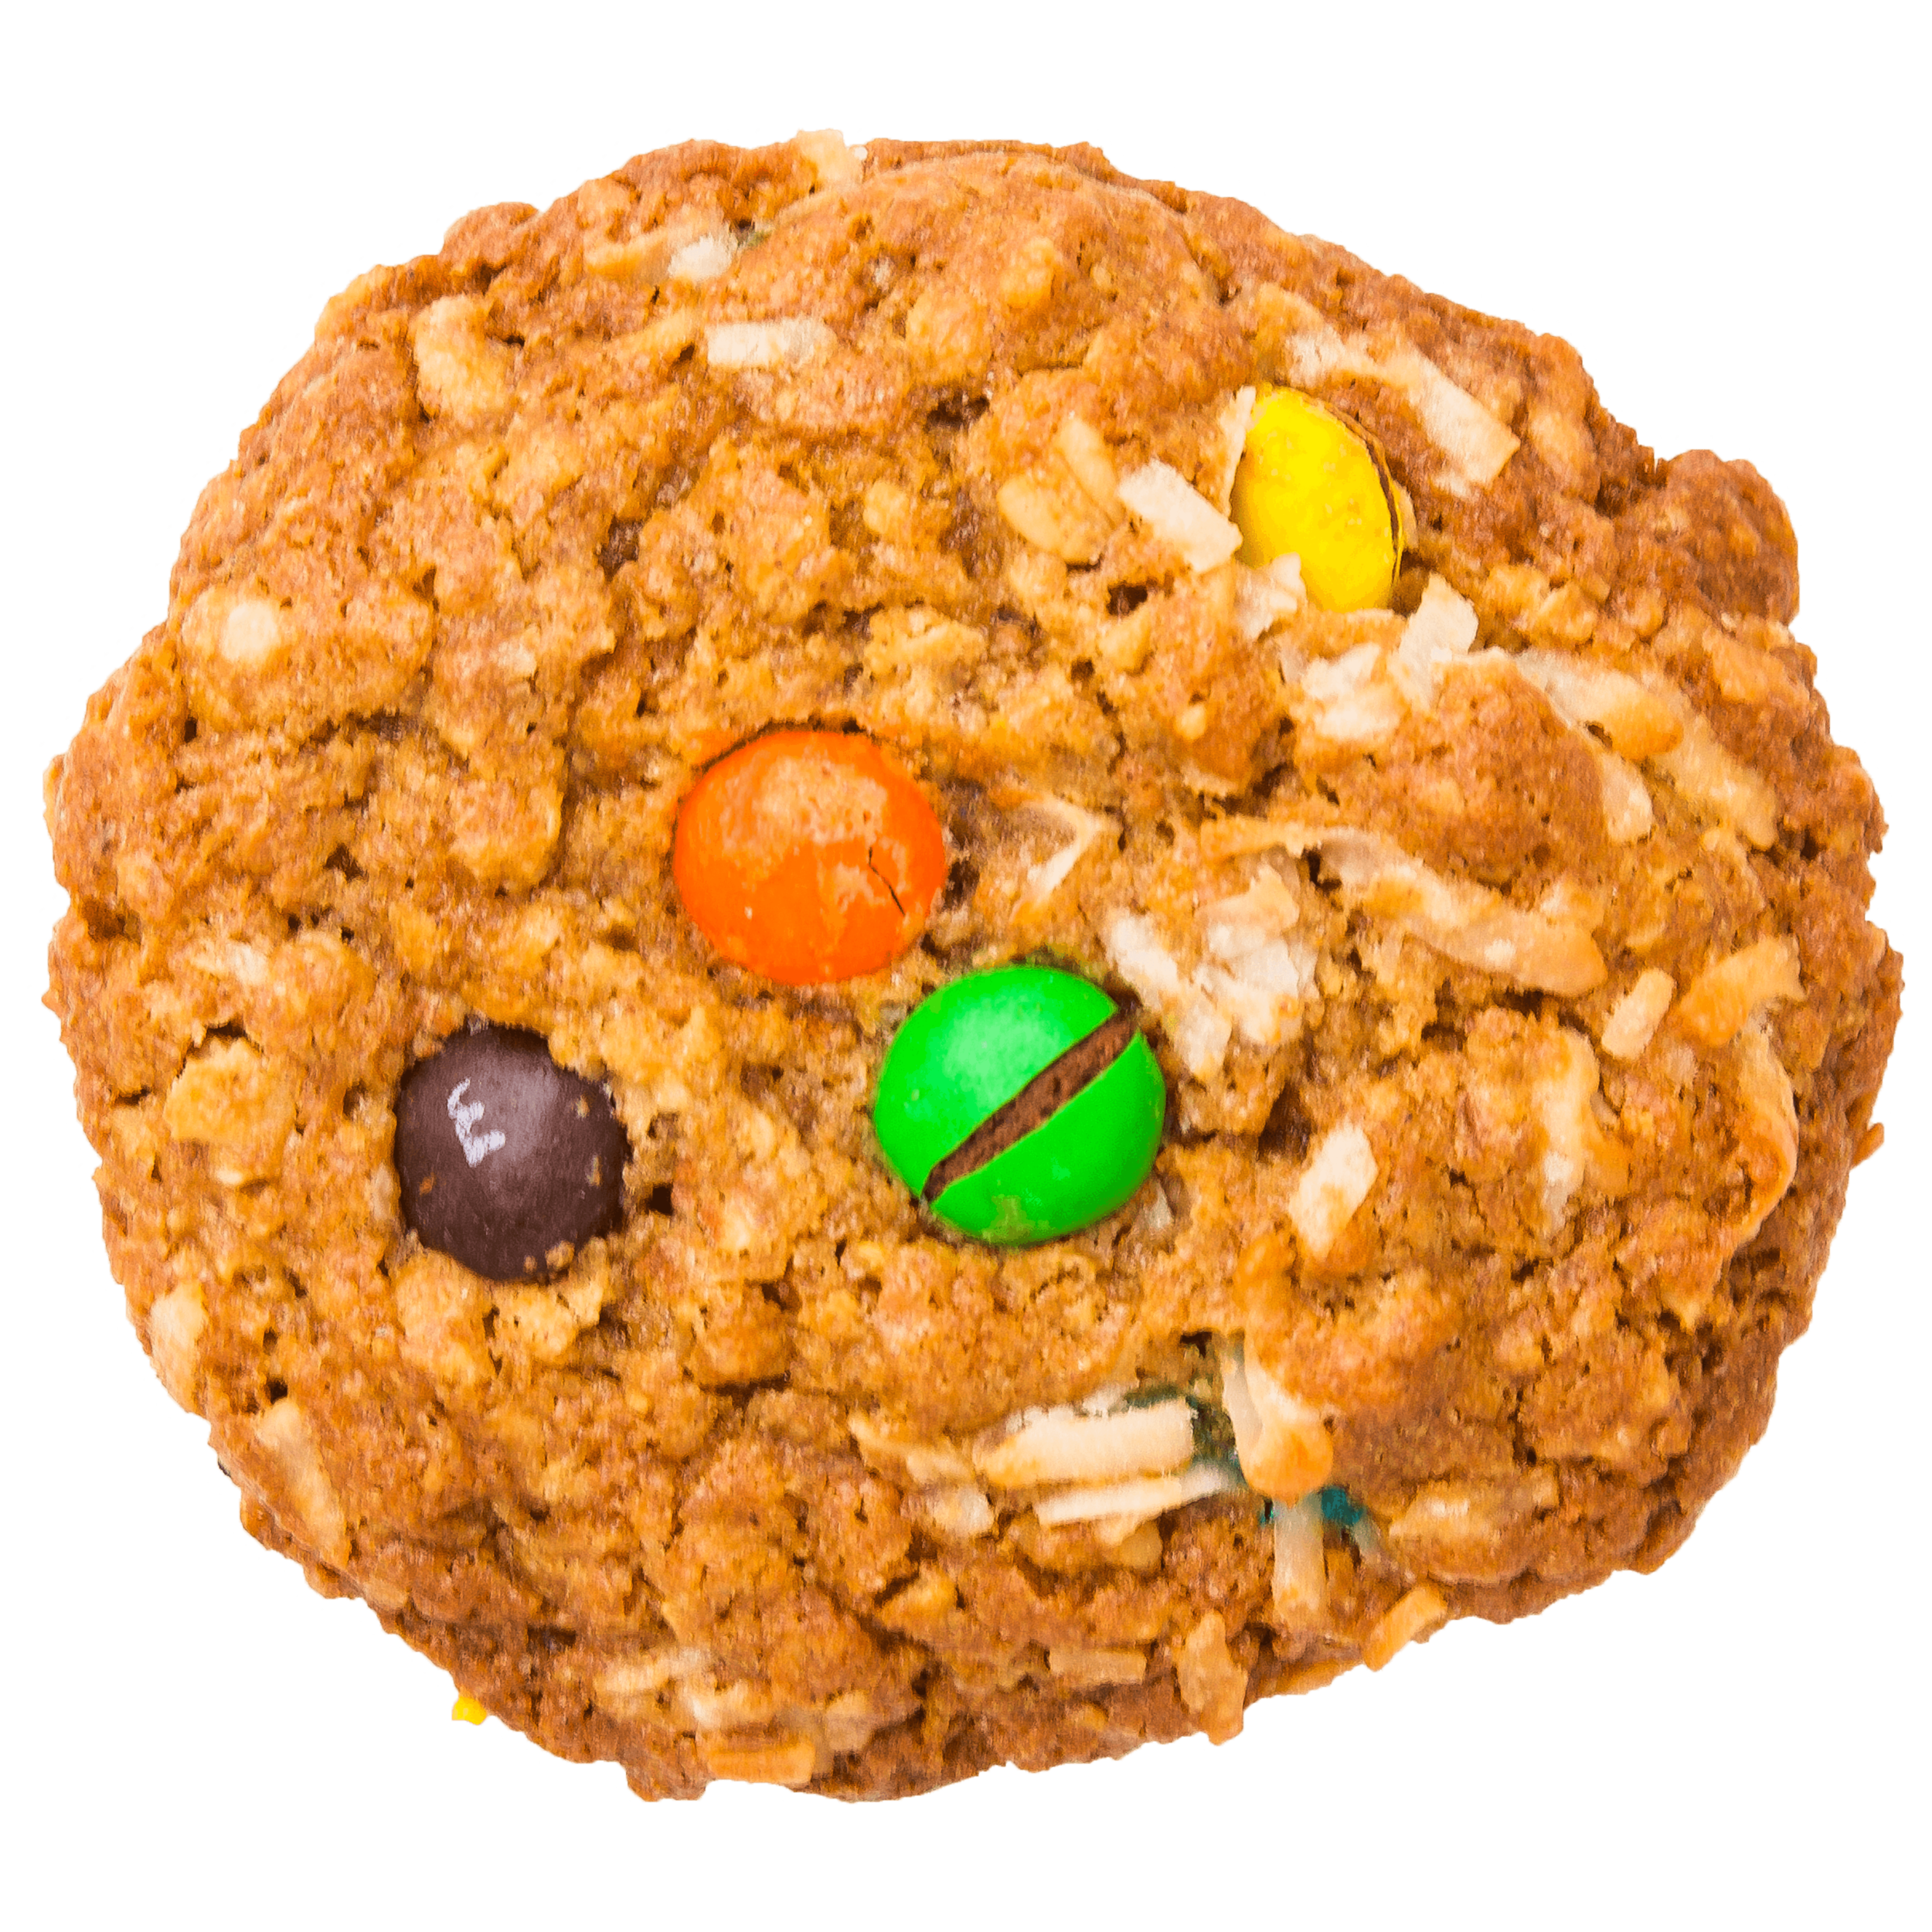 Cookie flavor 12 transparent.png